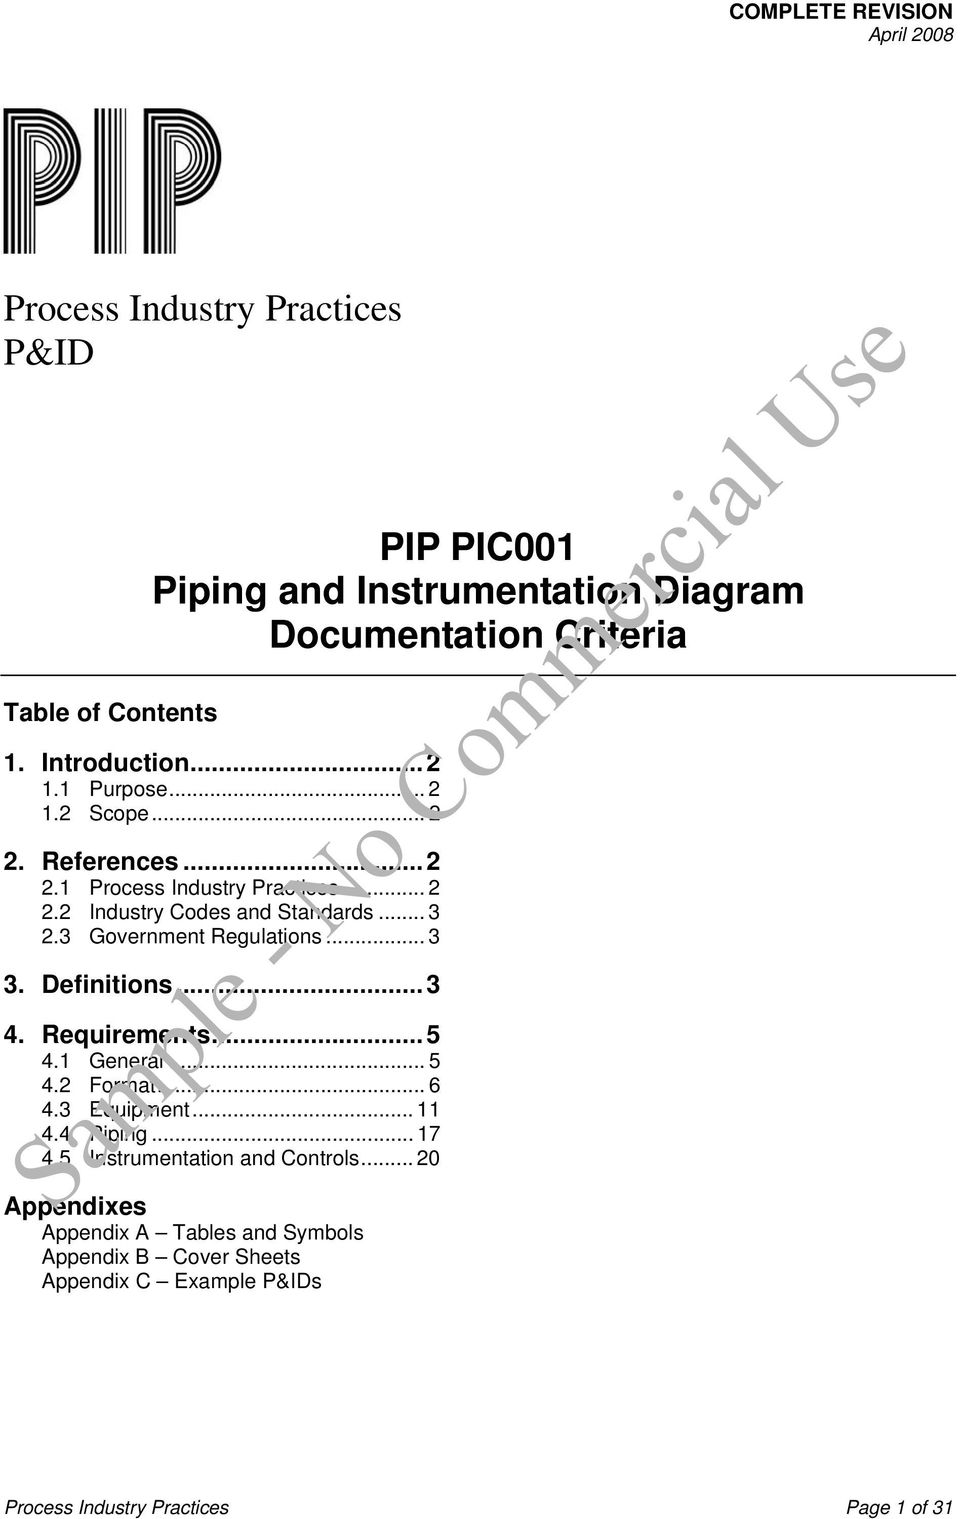 hight resolution of piping and instrumentation diagram guidelines